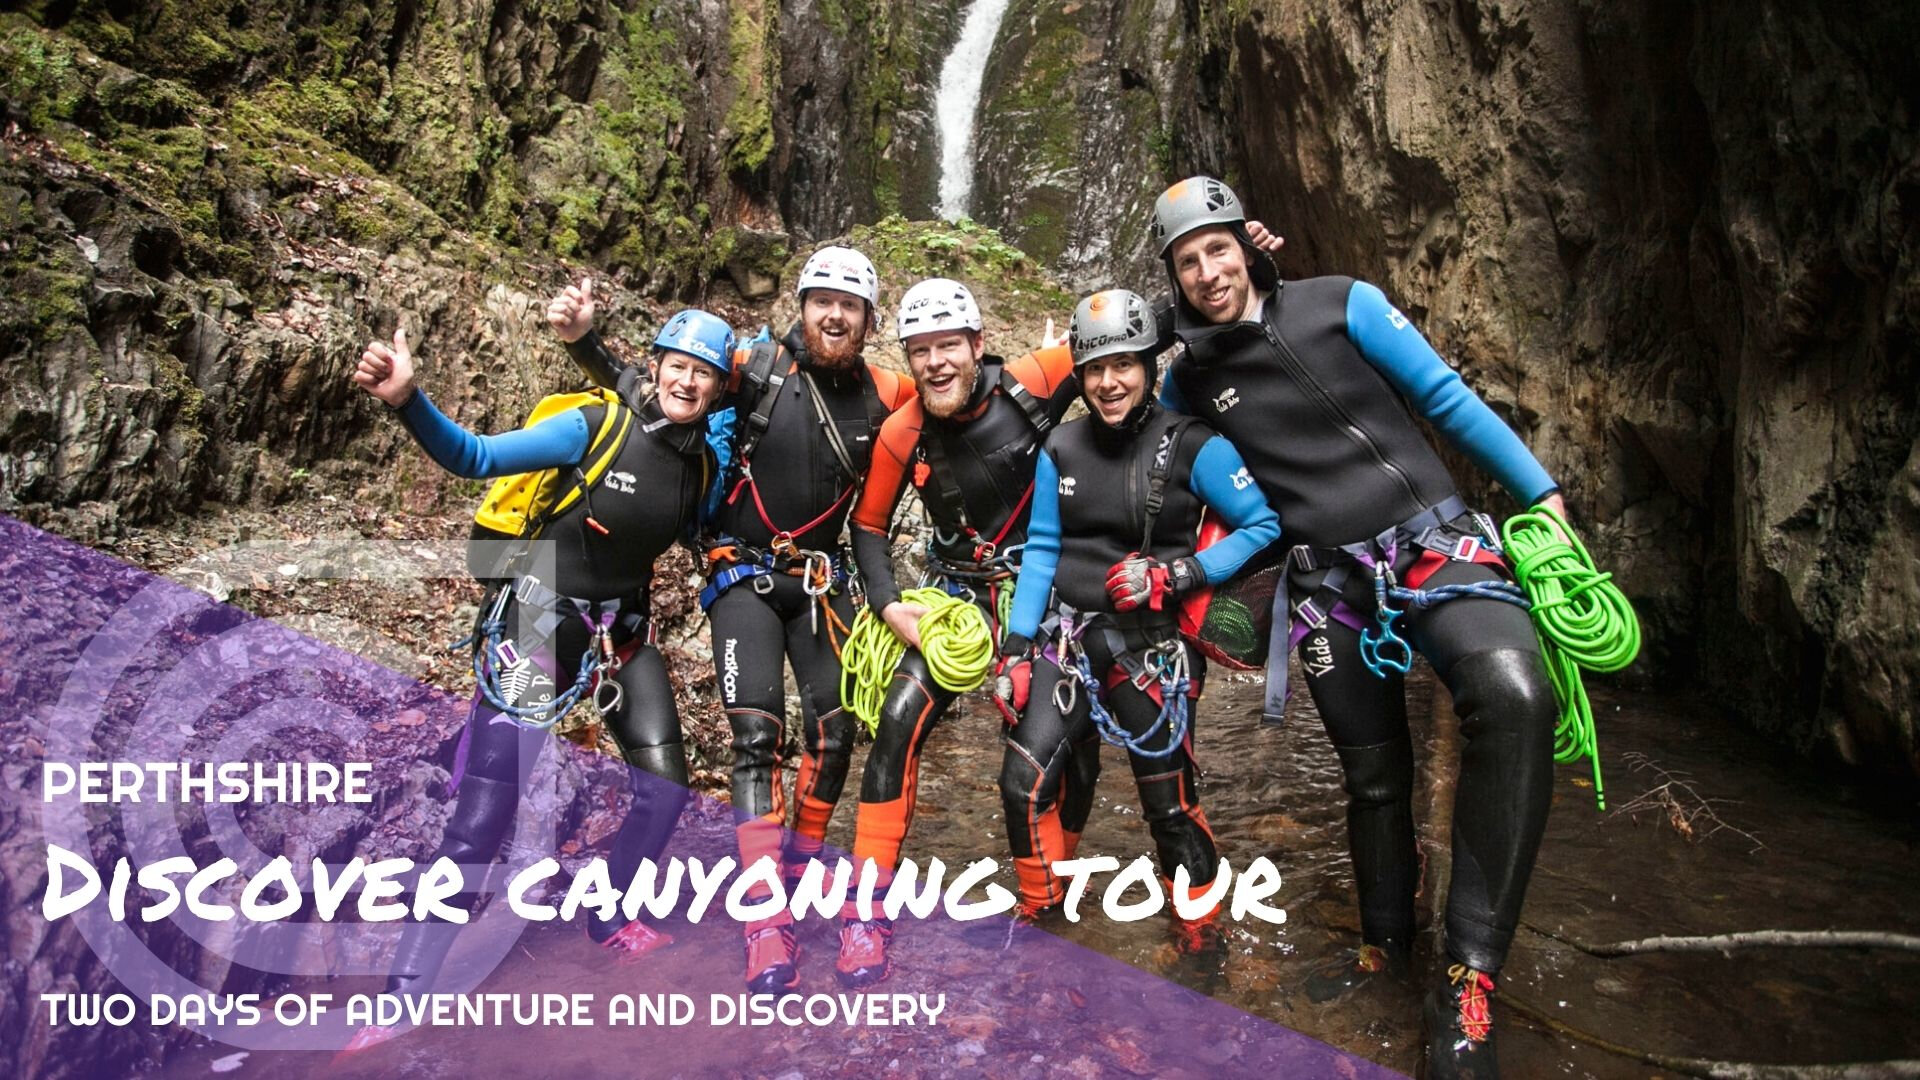 Discover Canyoning Tour - Perthshire